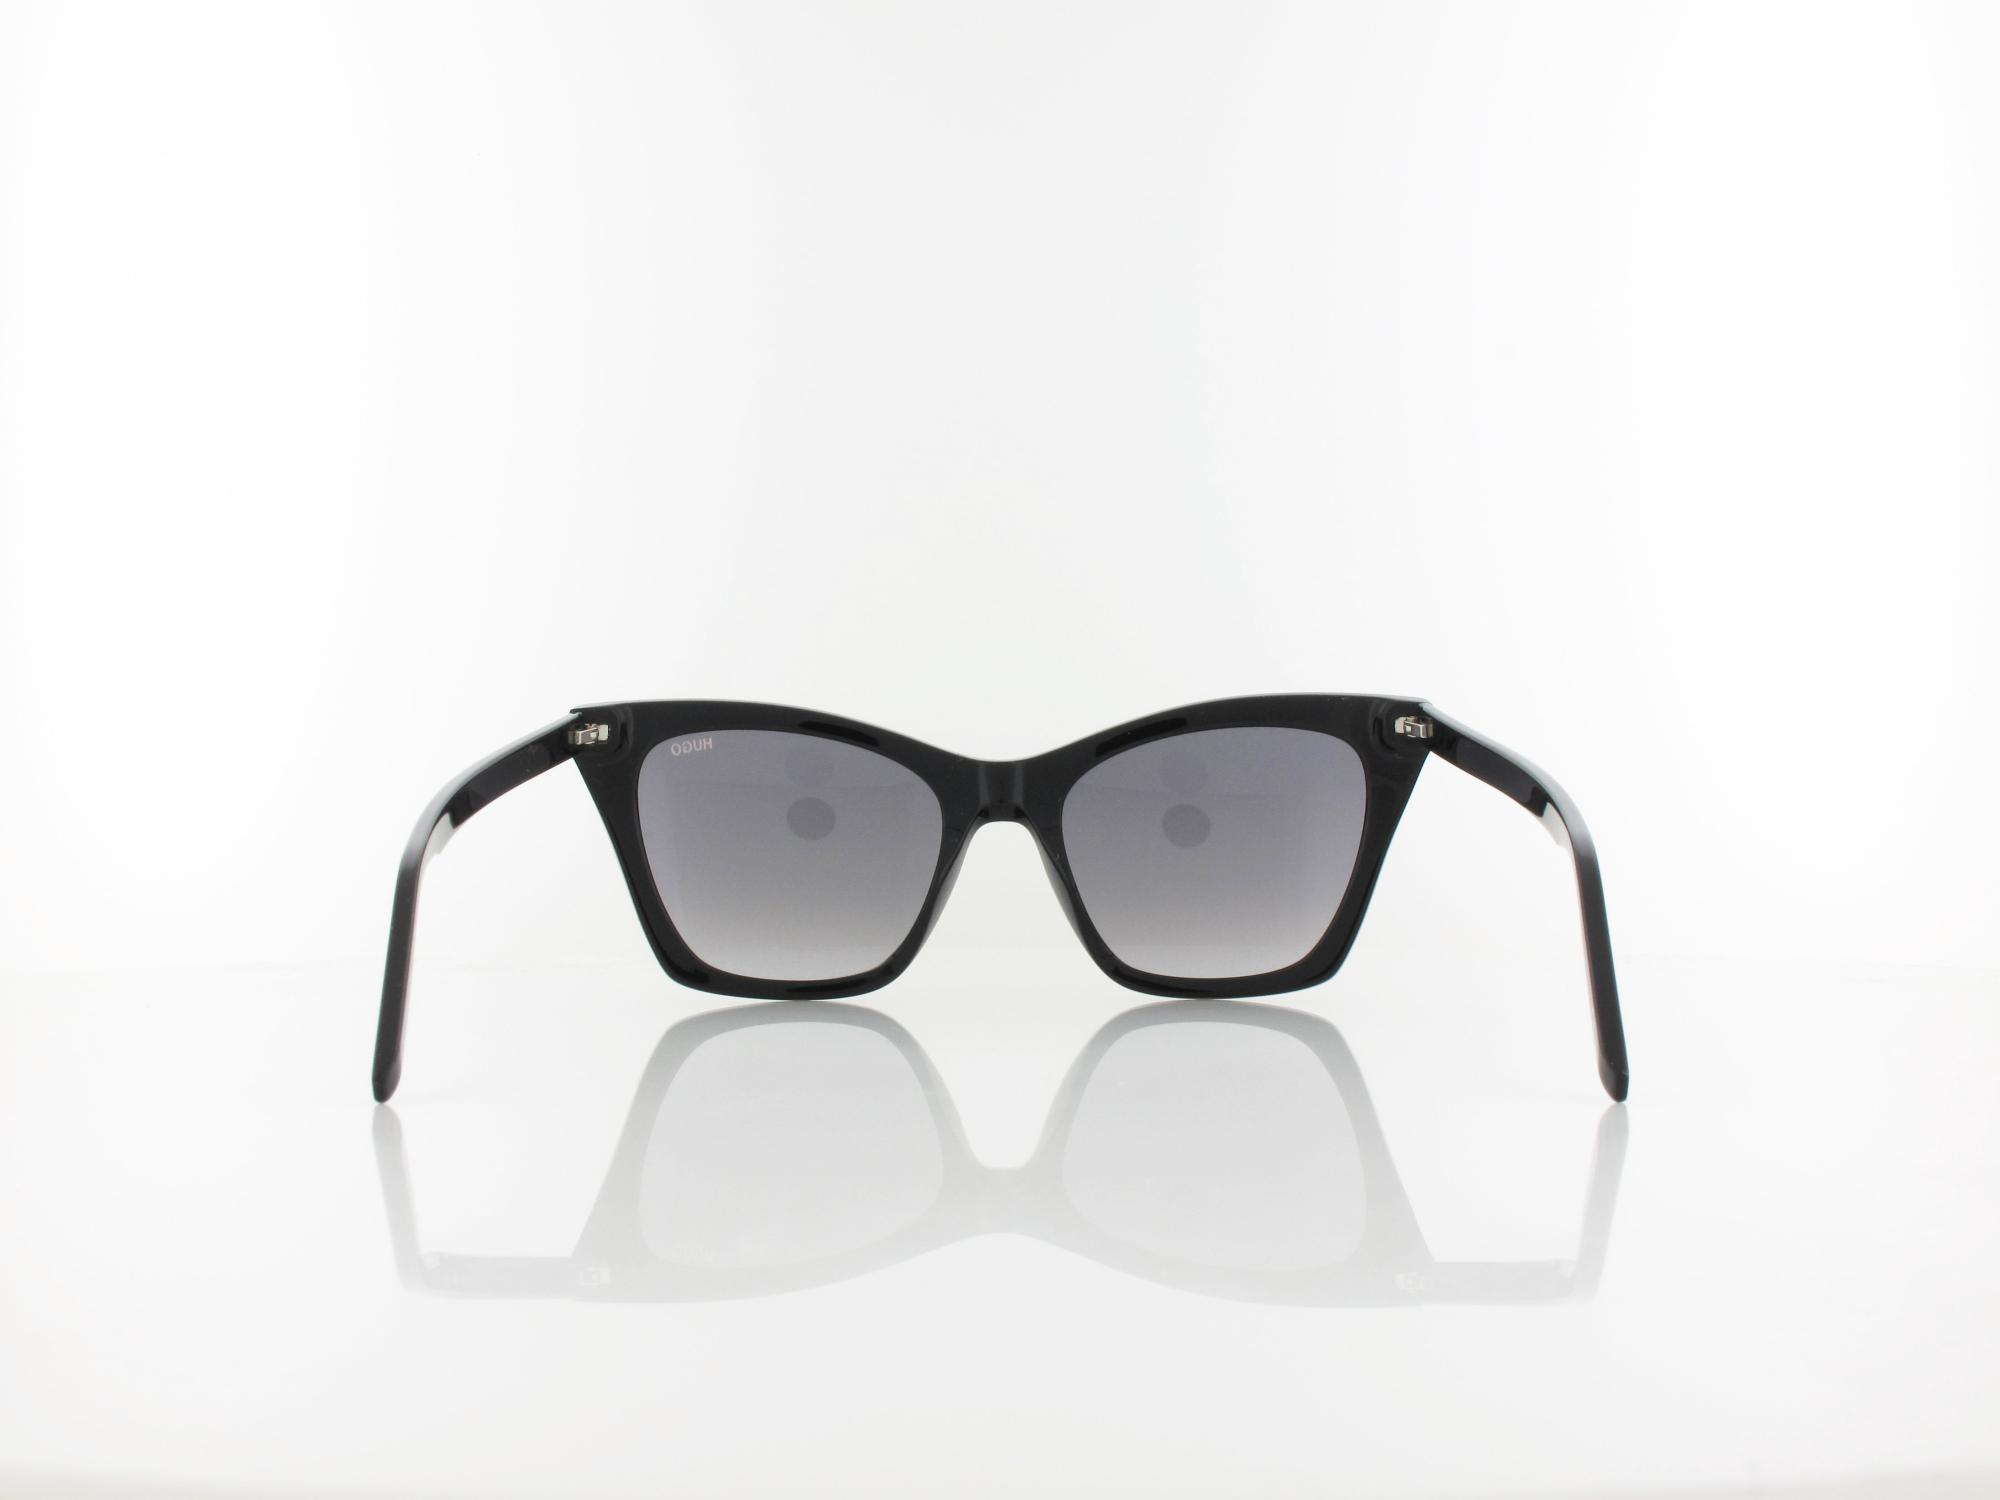 Hugo | HG 1055/S 807/9O 52 | black / dark grey gradient